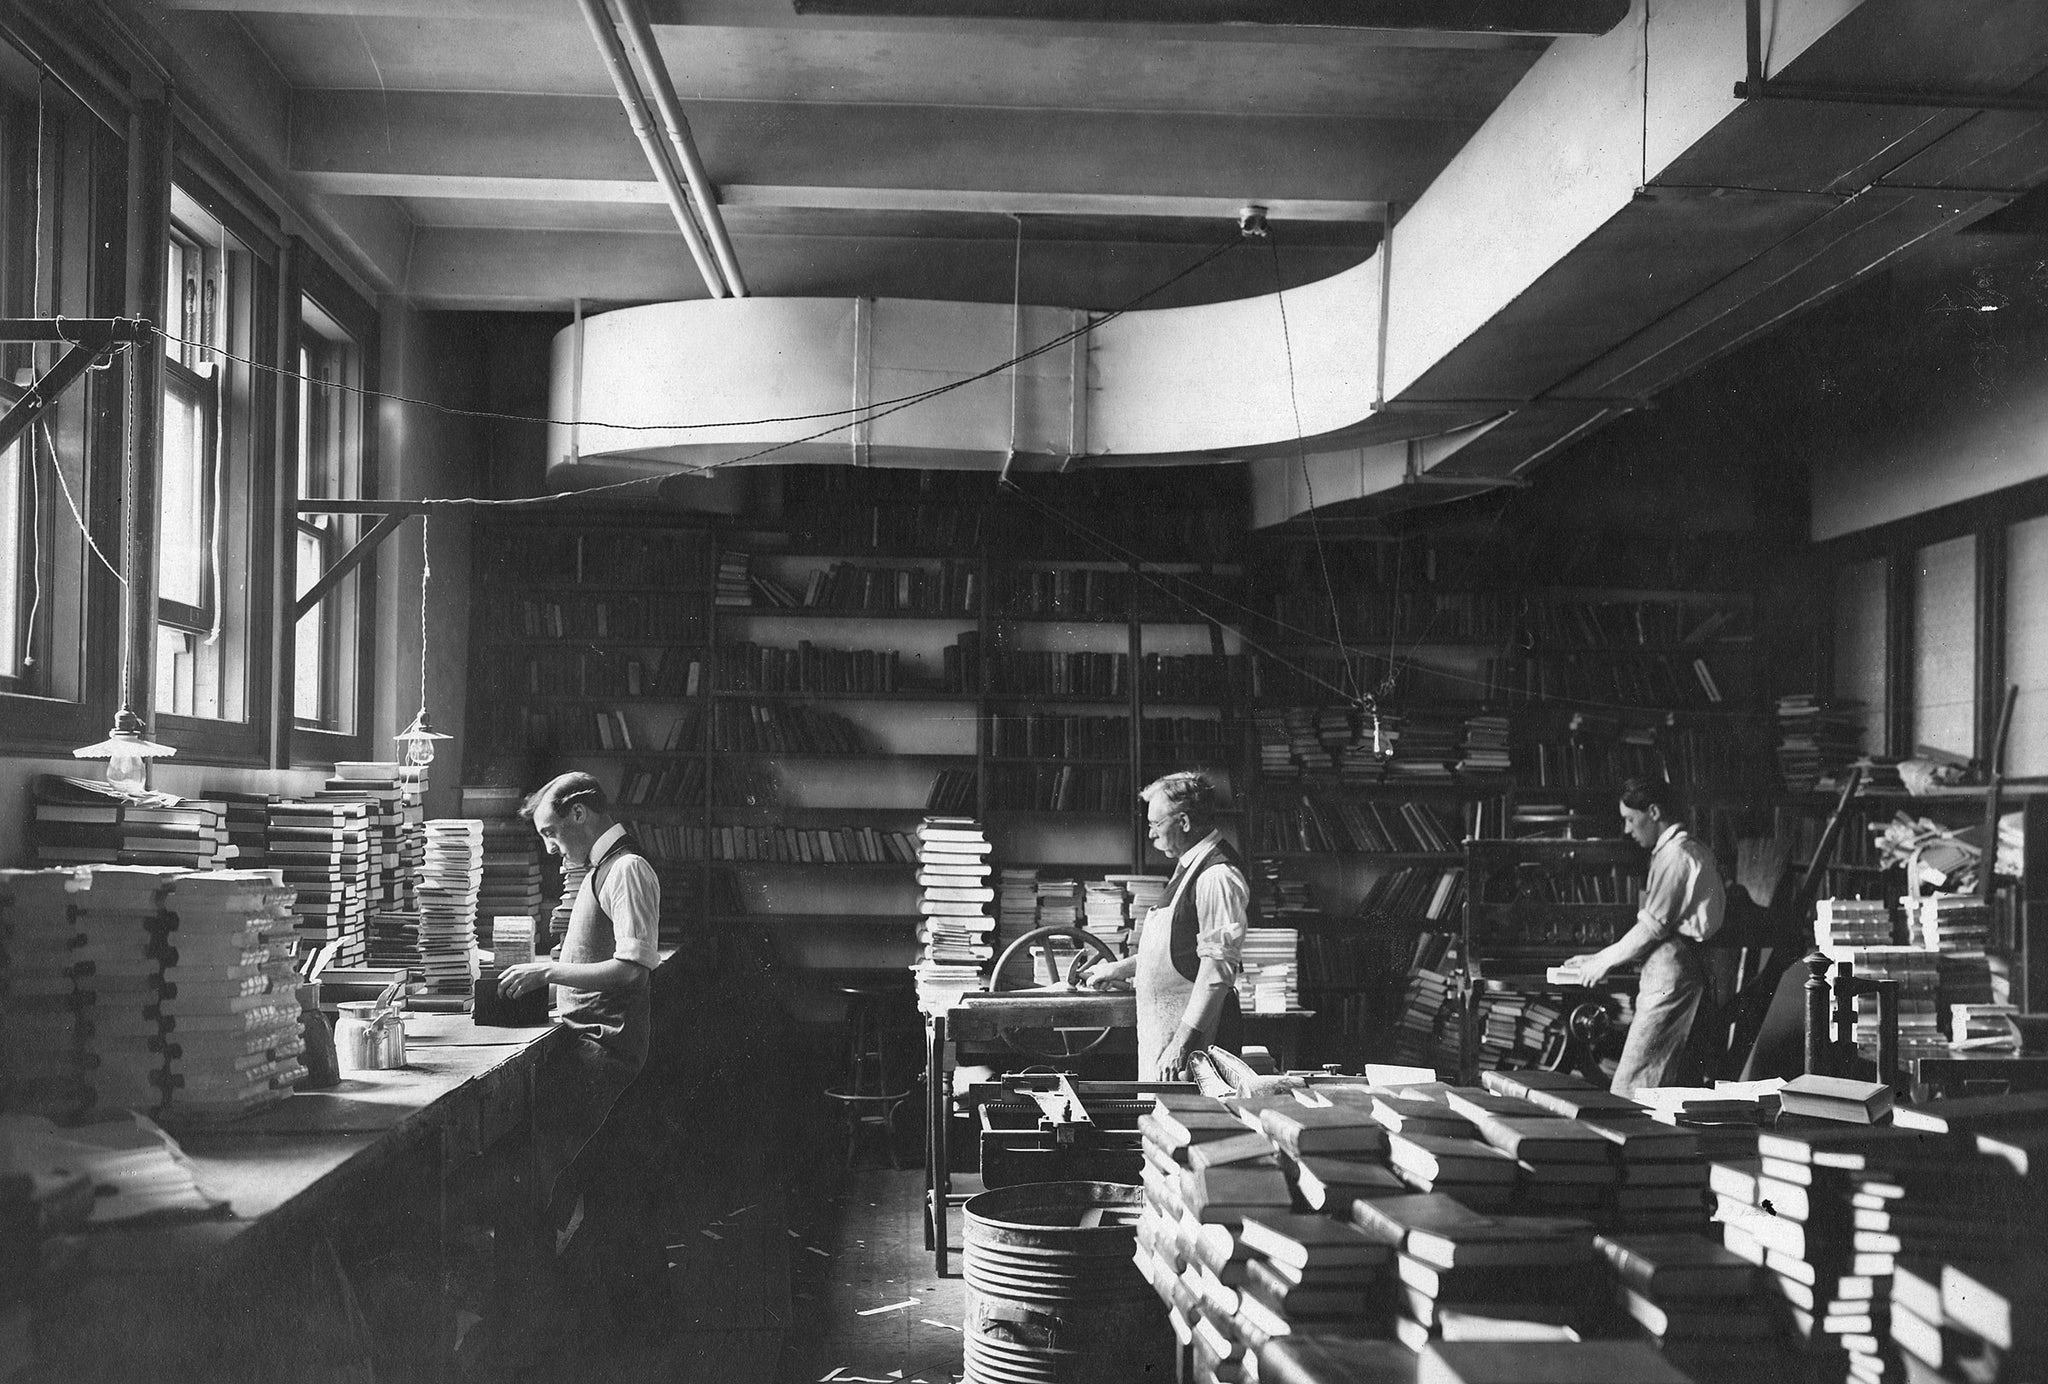 Seattle Book Bindery, 1910 – Pediment